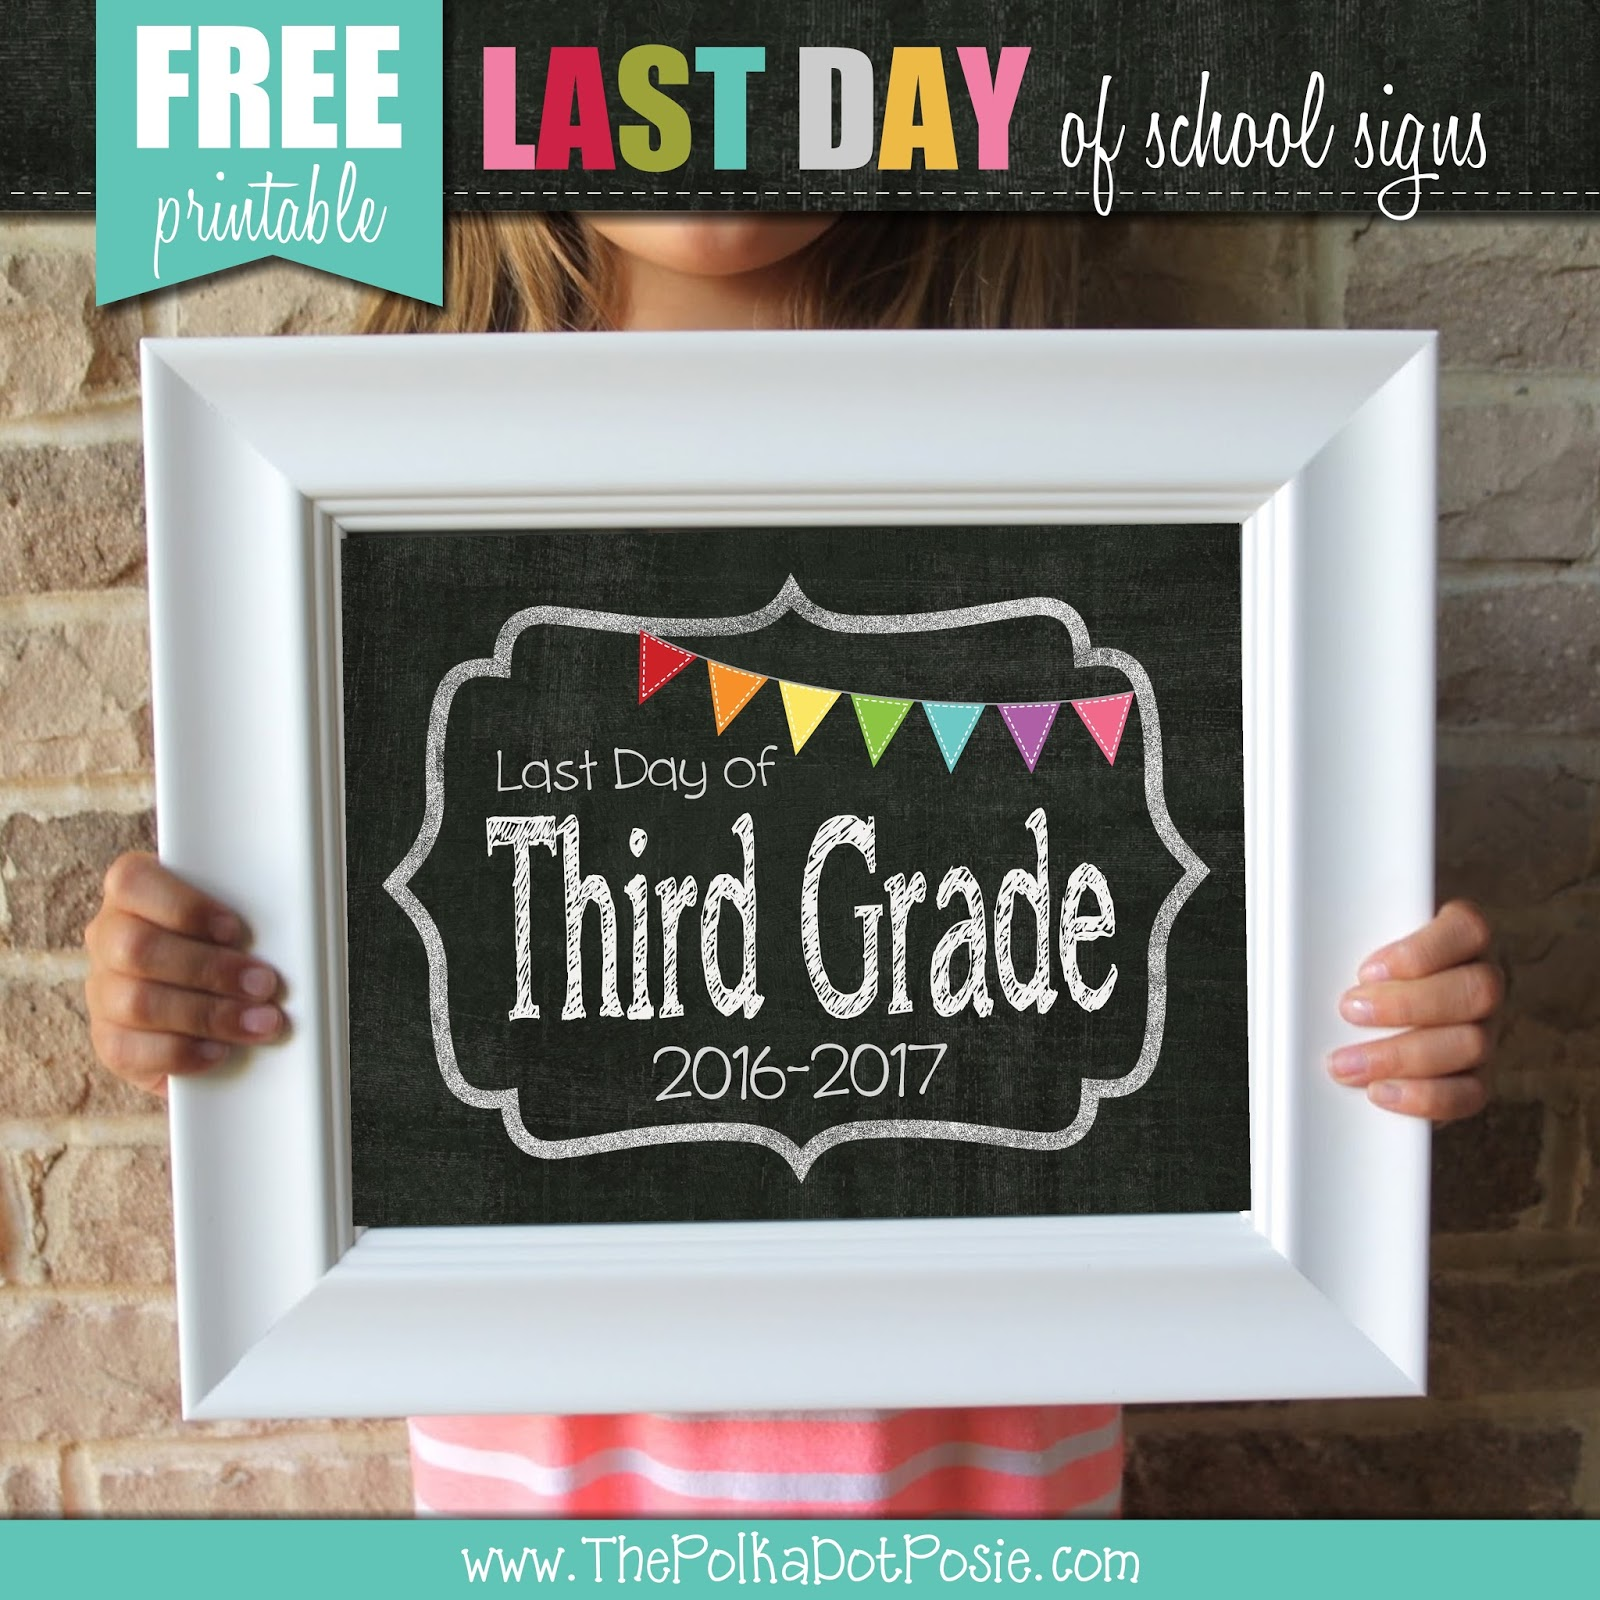 graphic relating to Free Printable Back to School Signs called The Polka Dot Posie: Free of charge Printable Past Working day of College Indicators!